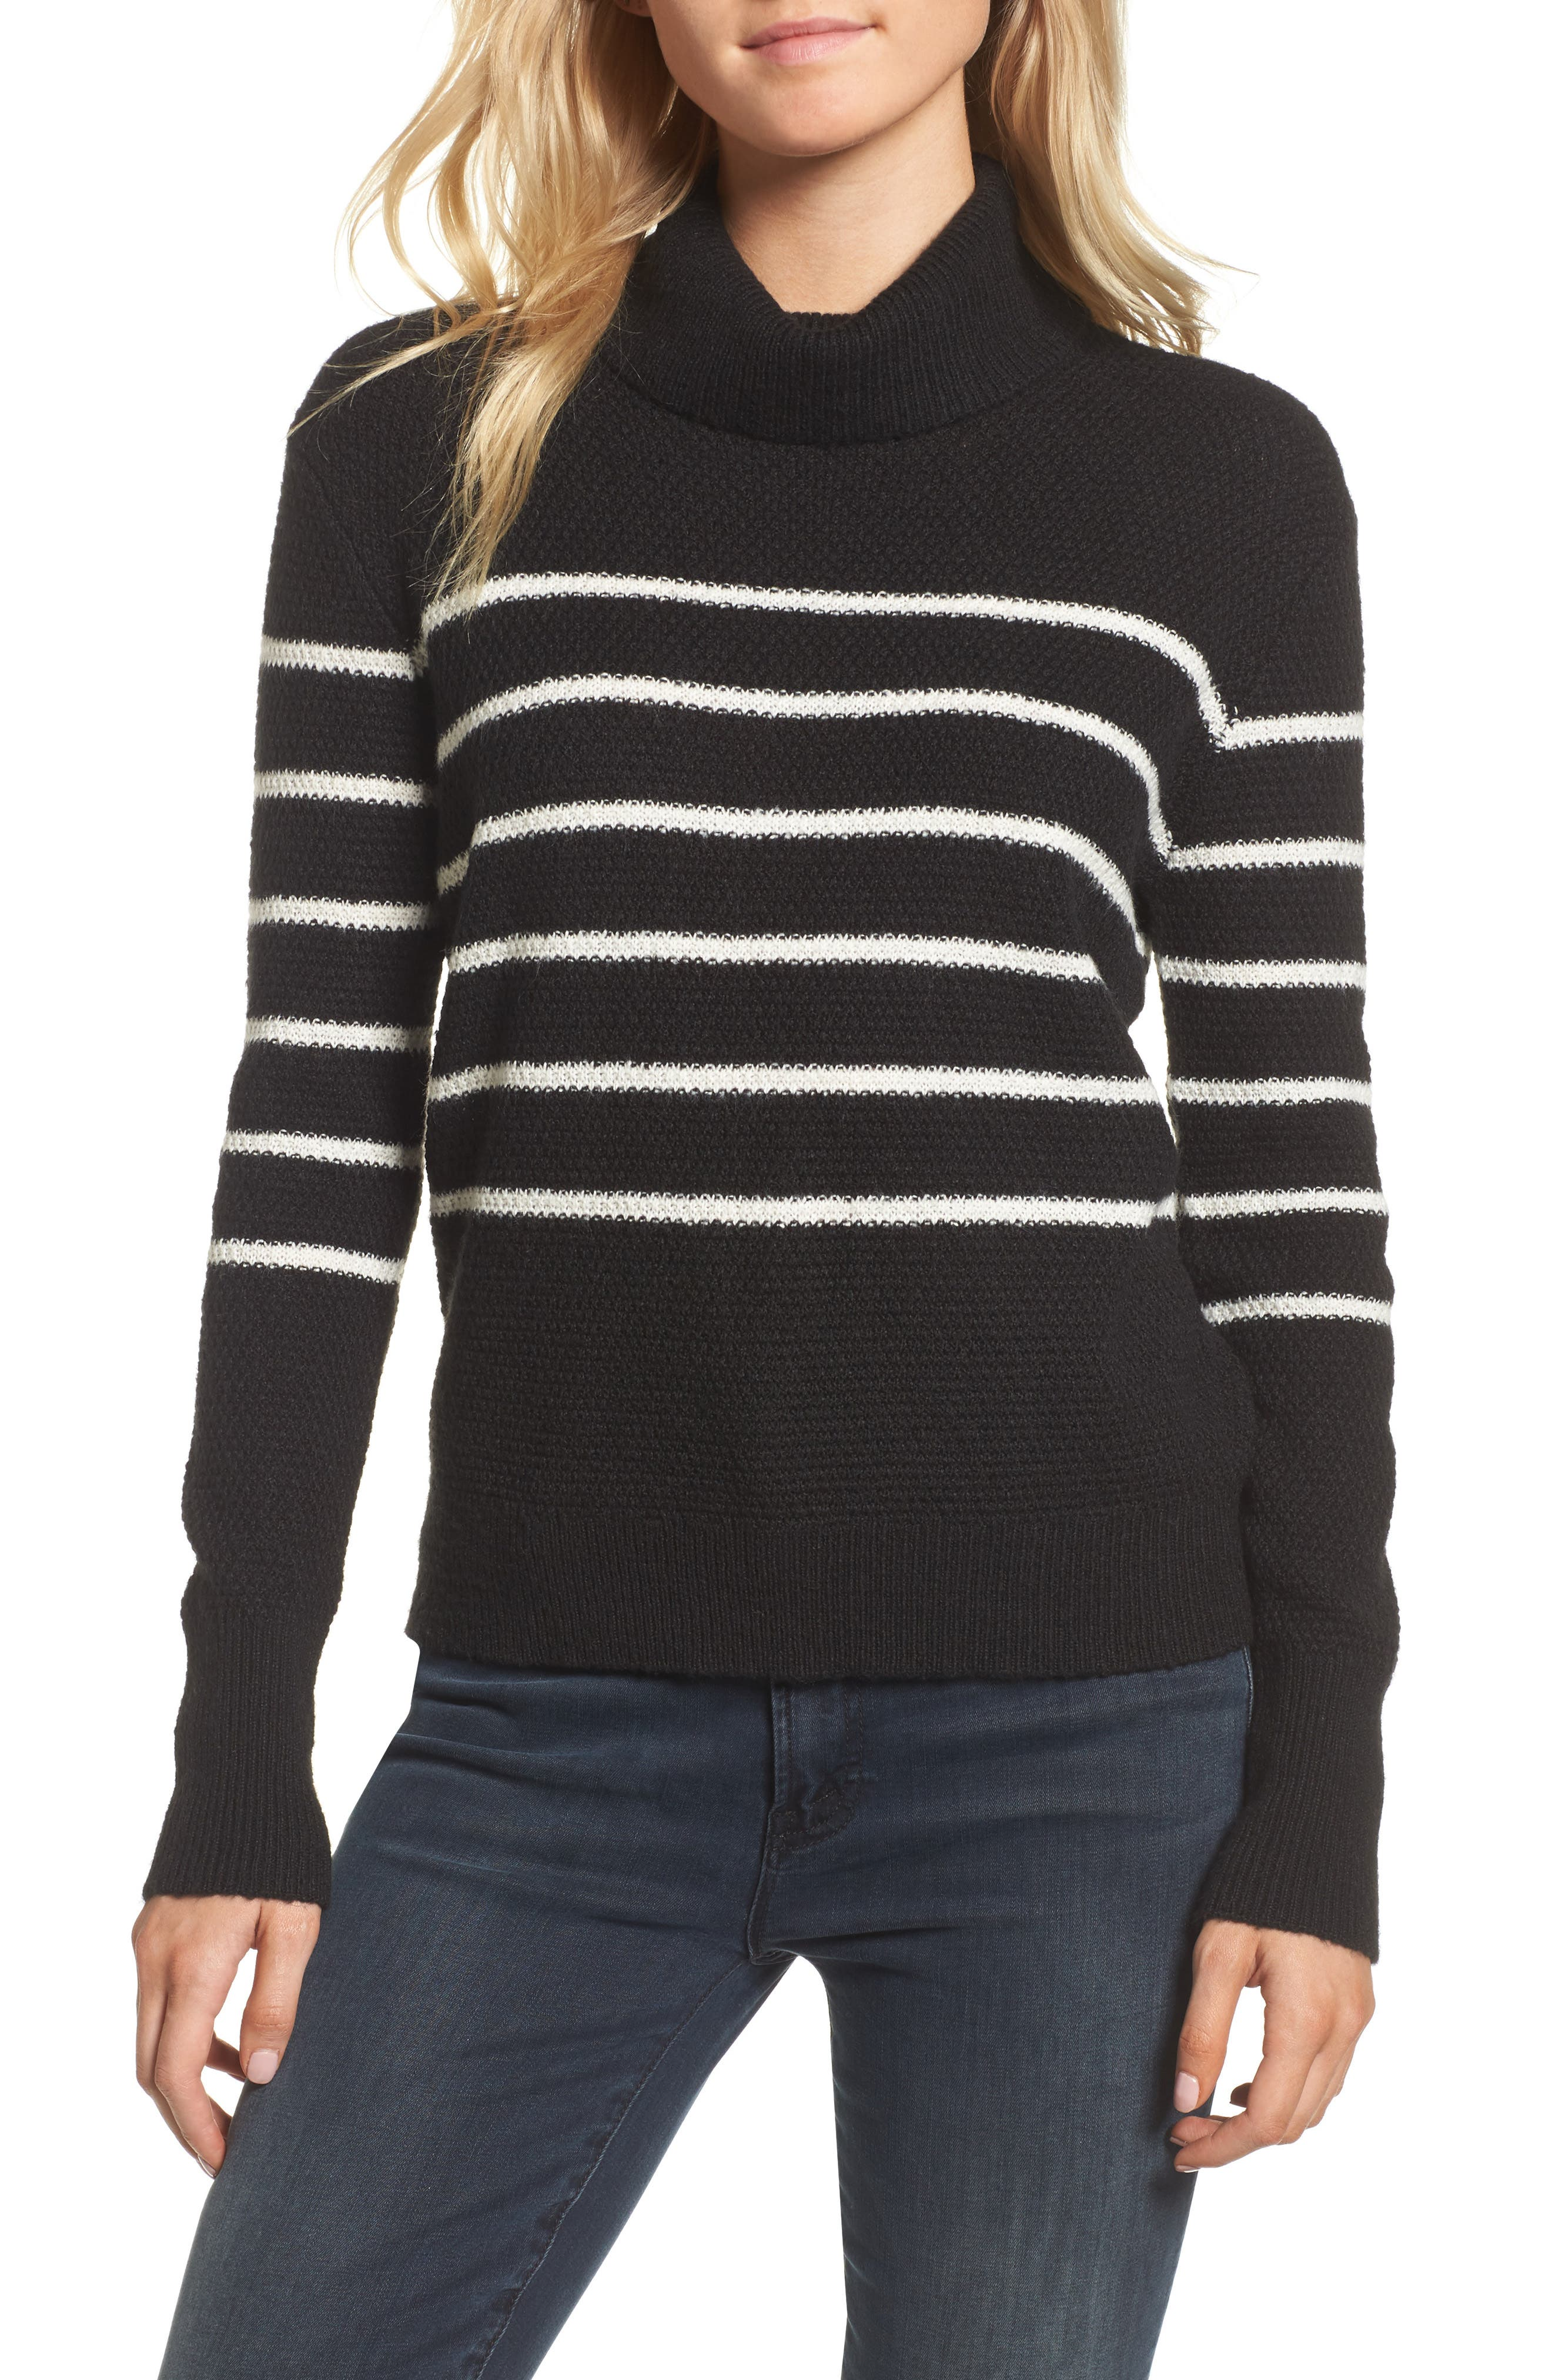 Main Image - cupcakes and cashmere Renny Turtleneck Sweater